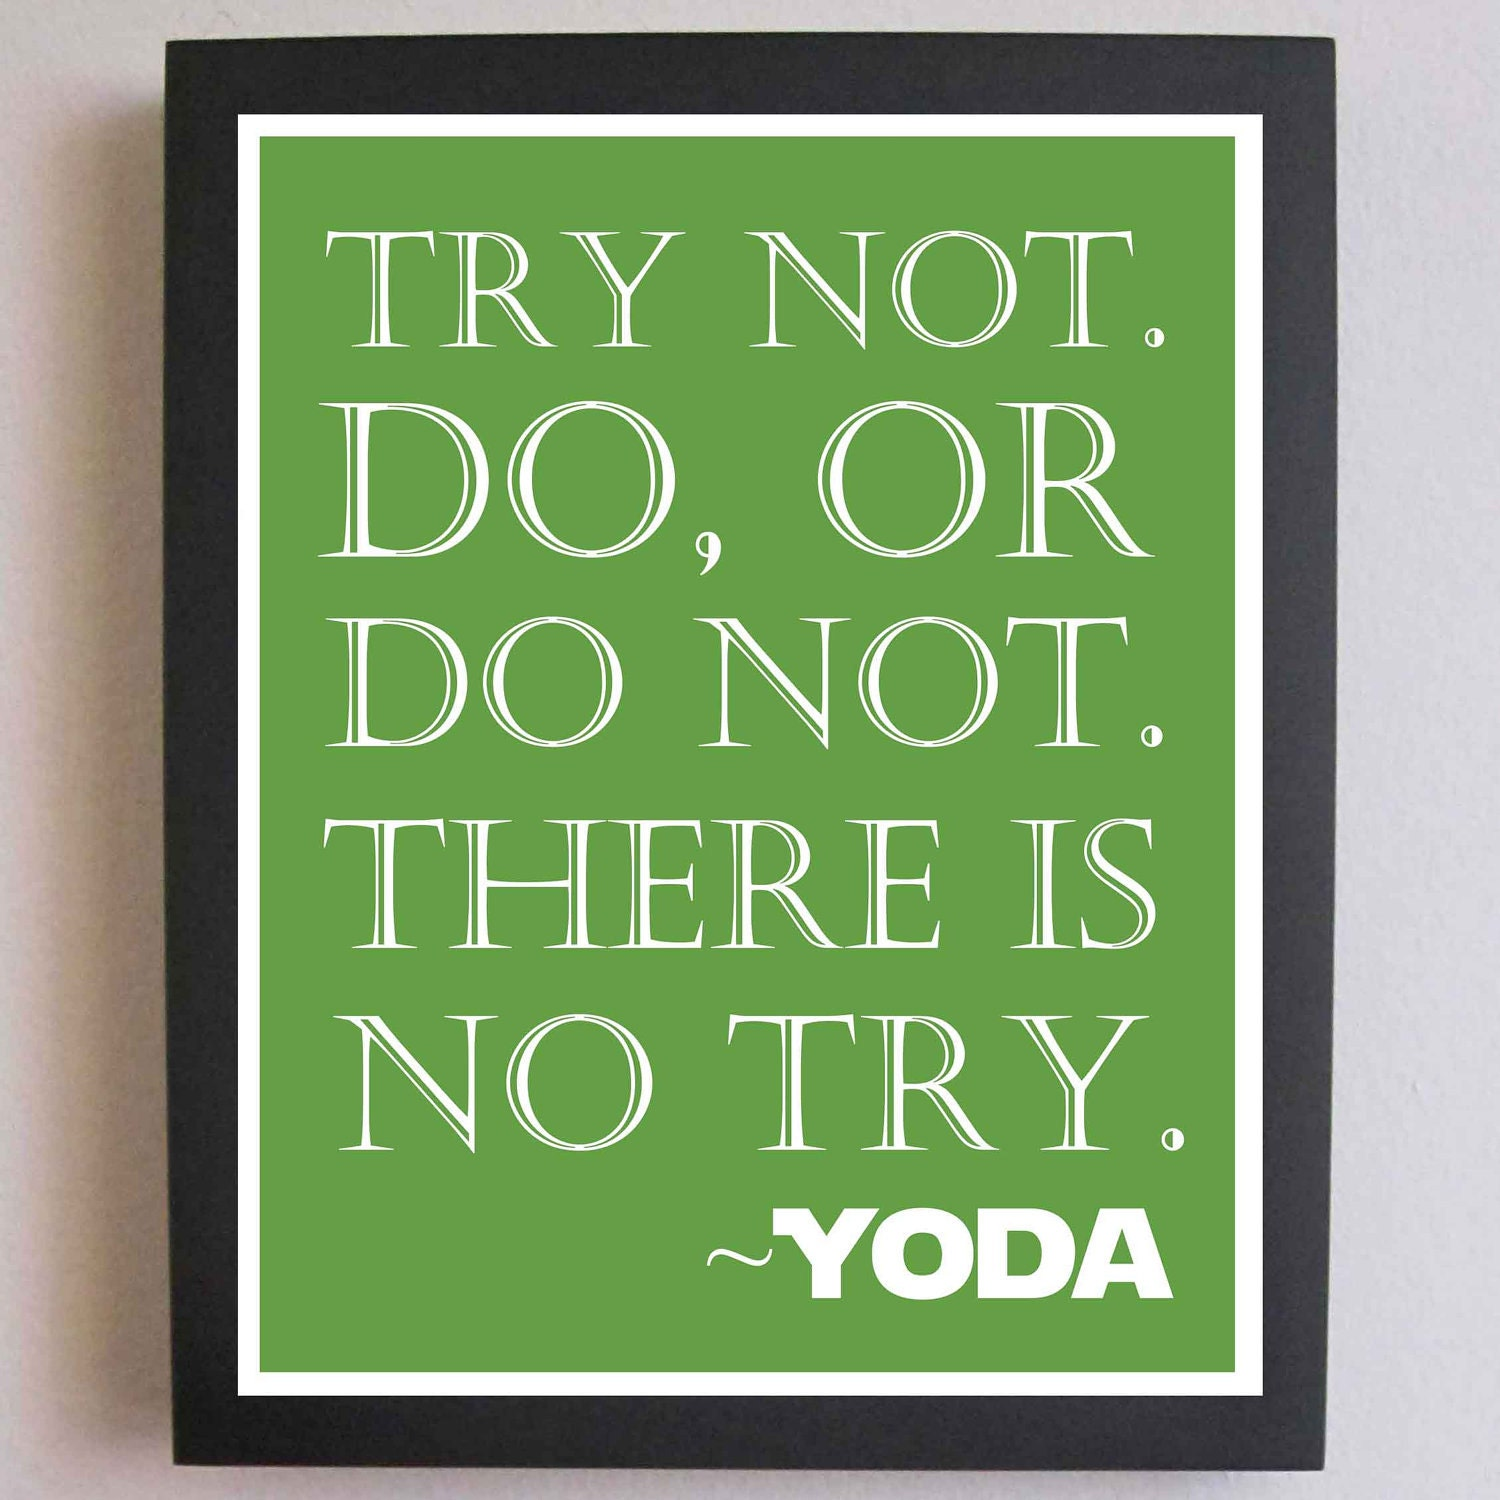 Quote Star Wars: Ignorance Star Wars Quotes Yoda